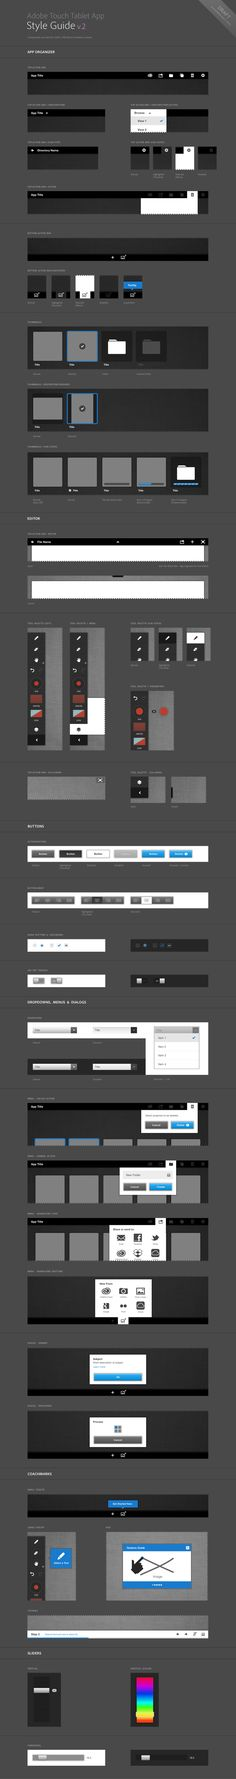 "Adobe Touch Tablet Style Guide *** ""Component sheet exploring of Adobe's Touch Tablet UI language"" by Gabriel Campbell, via Behance *** Ux Design, Flat Design, Tool Design, Layout Design, Gui Interface, User Interface Design, Web Style Guide, Style Guides, Wireframe"